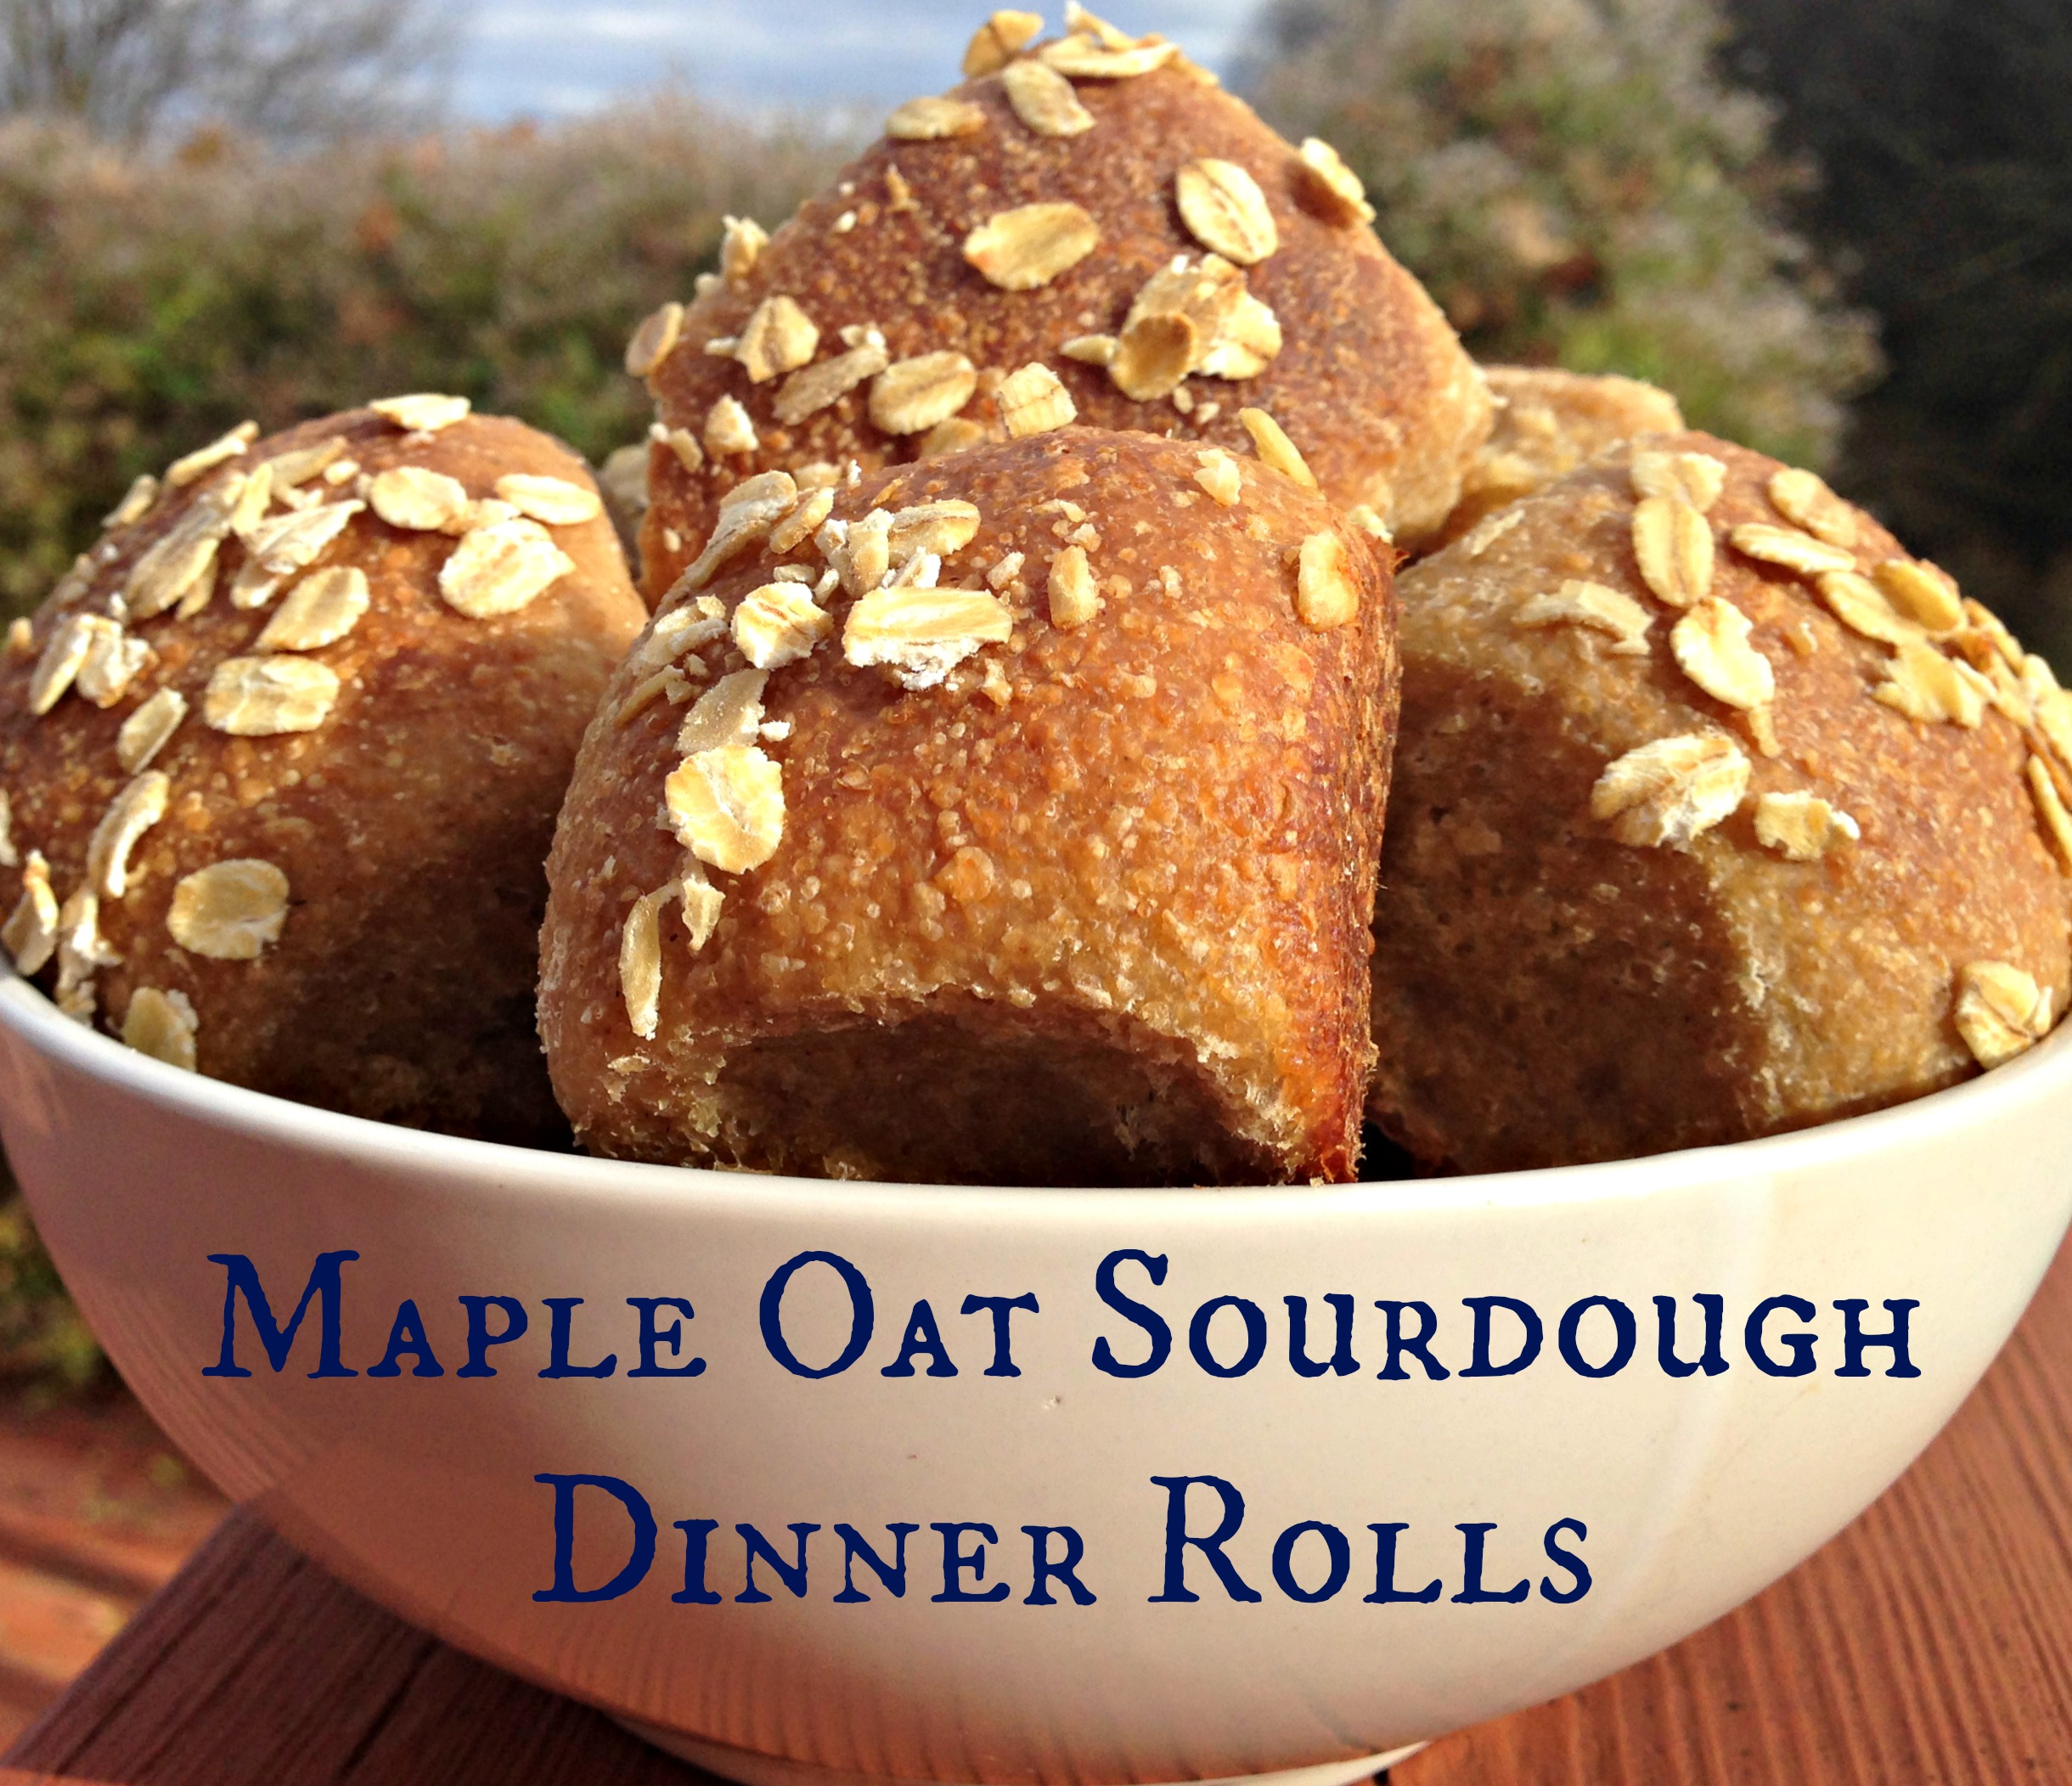 Maple Oat Sourdough Dinner Rolls